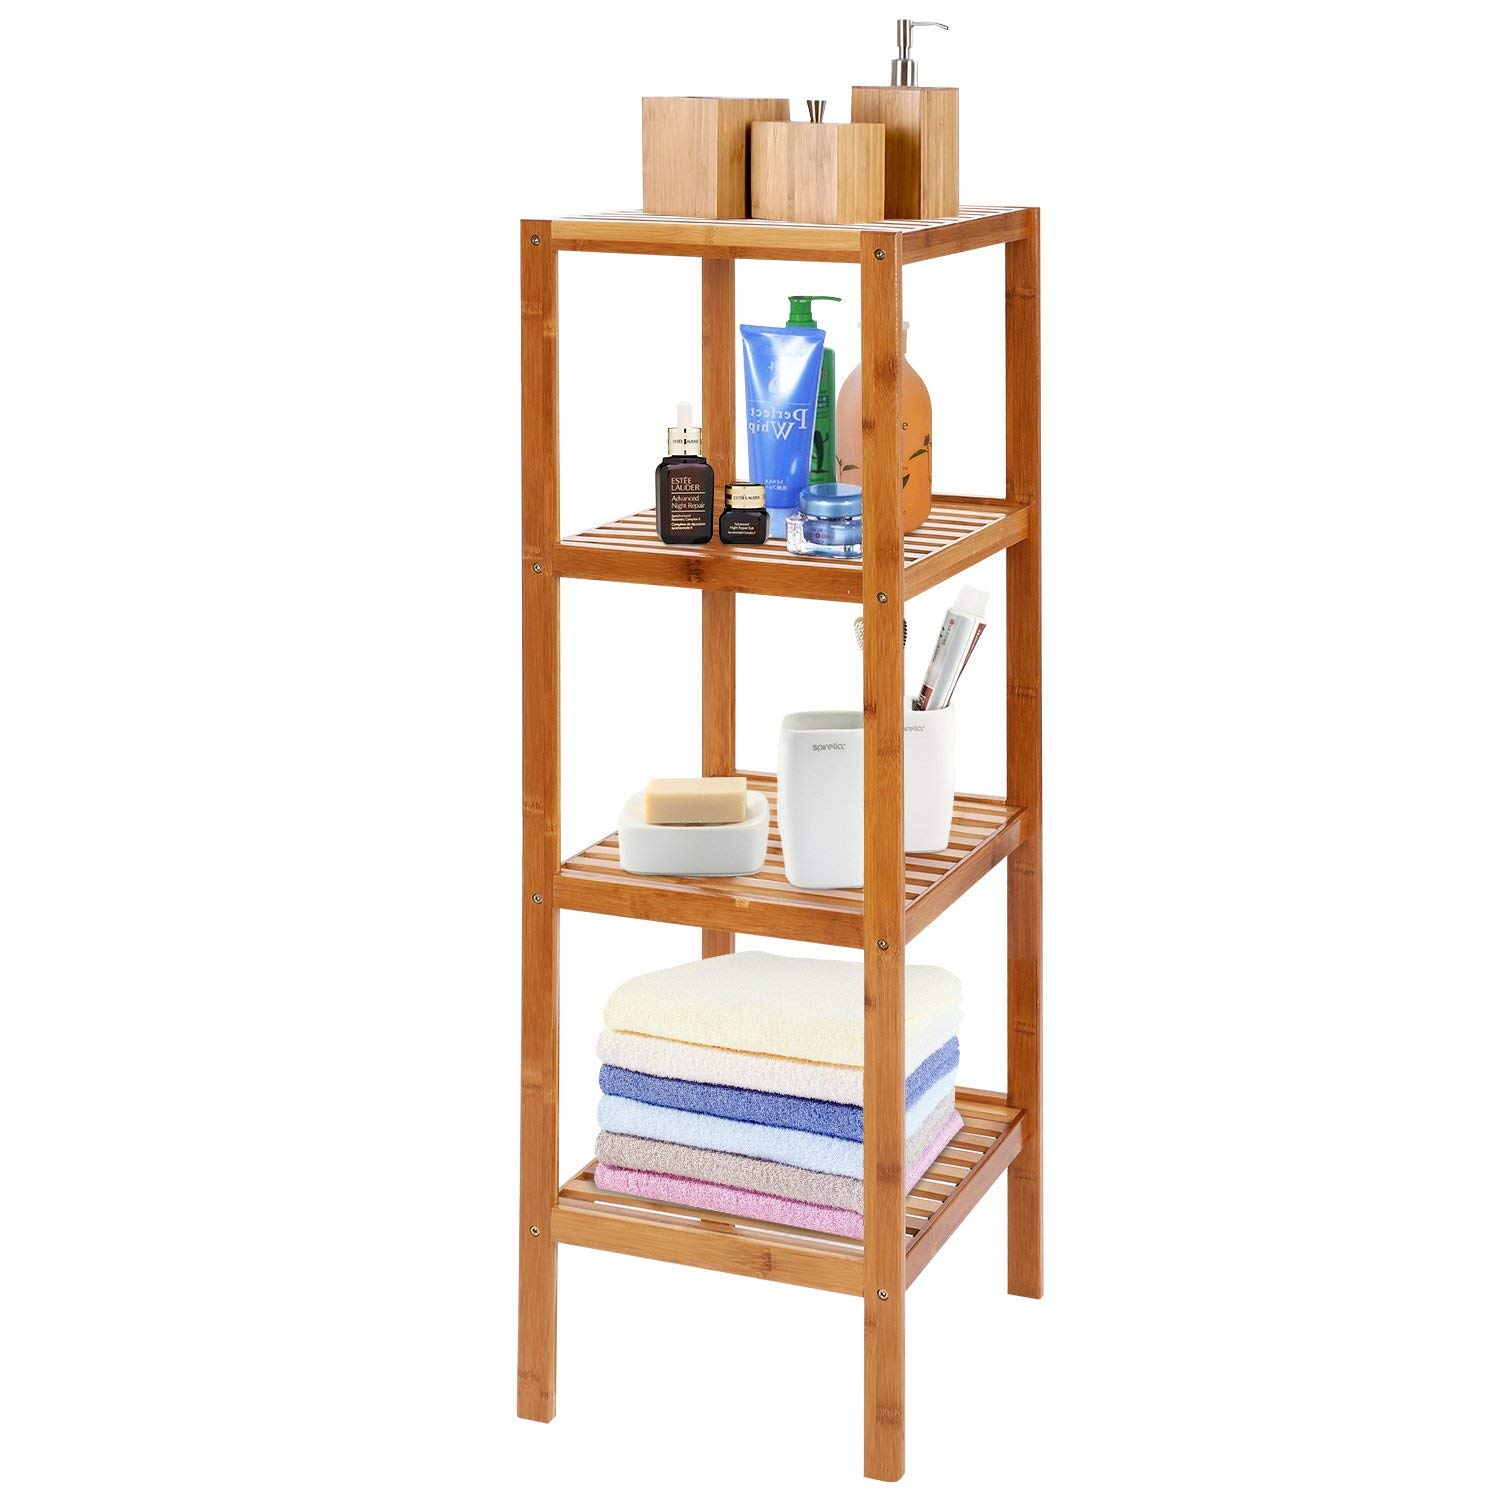 Mirage Bamboo Bathroom Shelf 4 Tier Multifunctional Storage Standing Rack Shelving Unit Tower Free Organizer 437 Height Rakuten regarding size 1500 X 1500